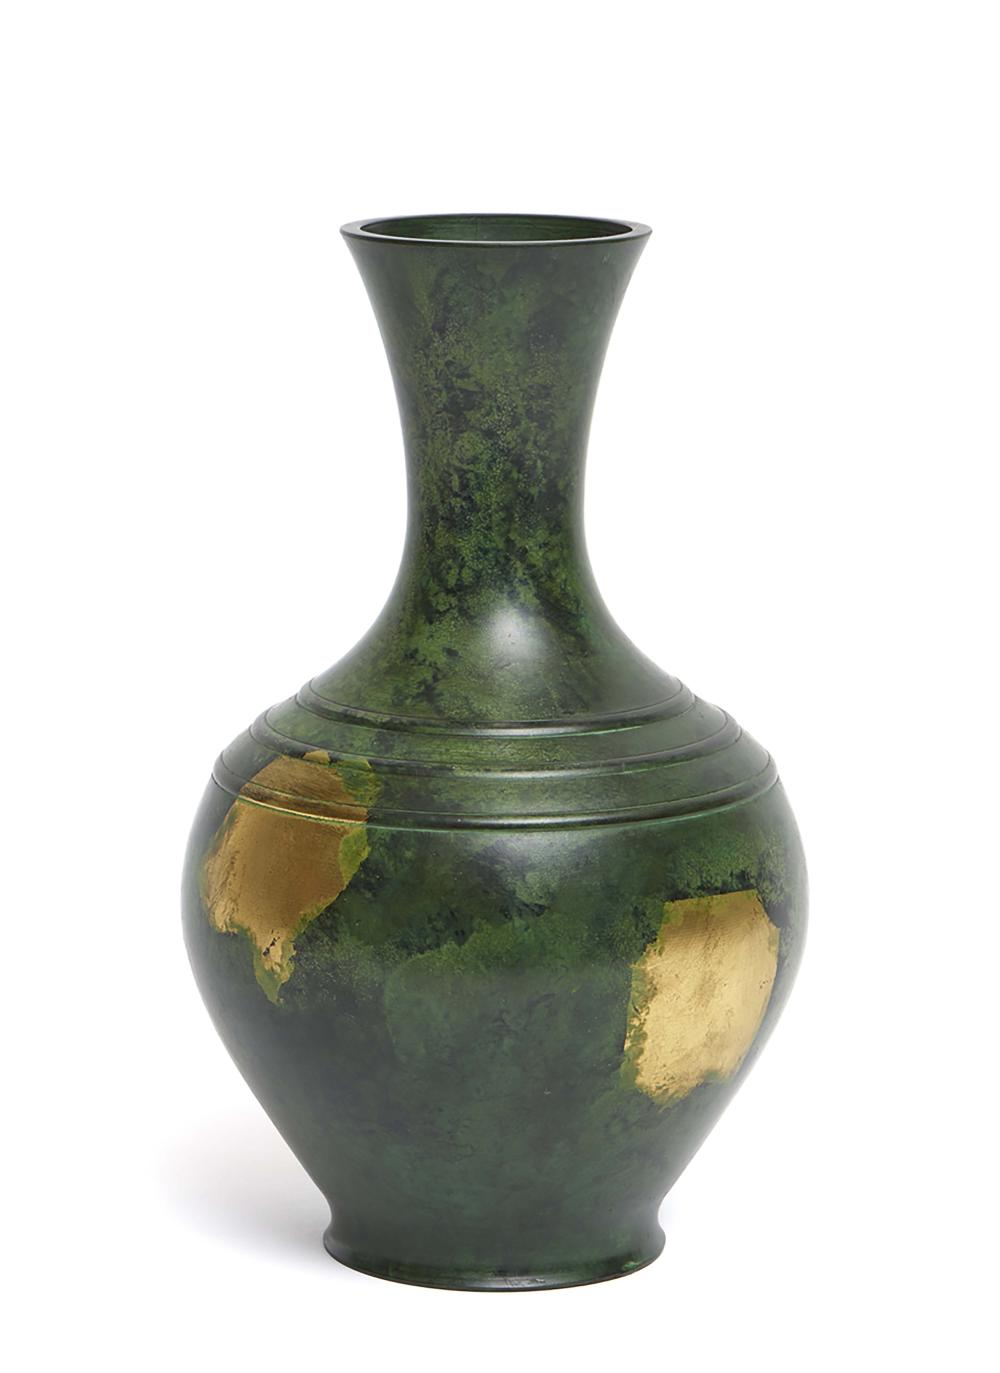 Dark green flask shaped bronze vase decorated with patches of gold. Unclear